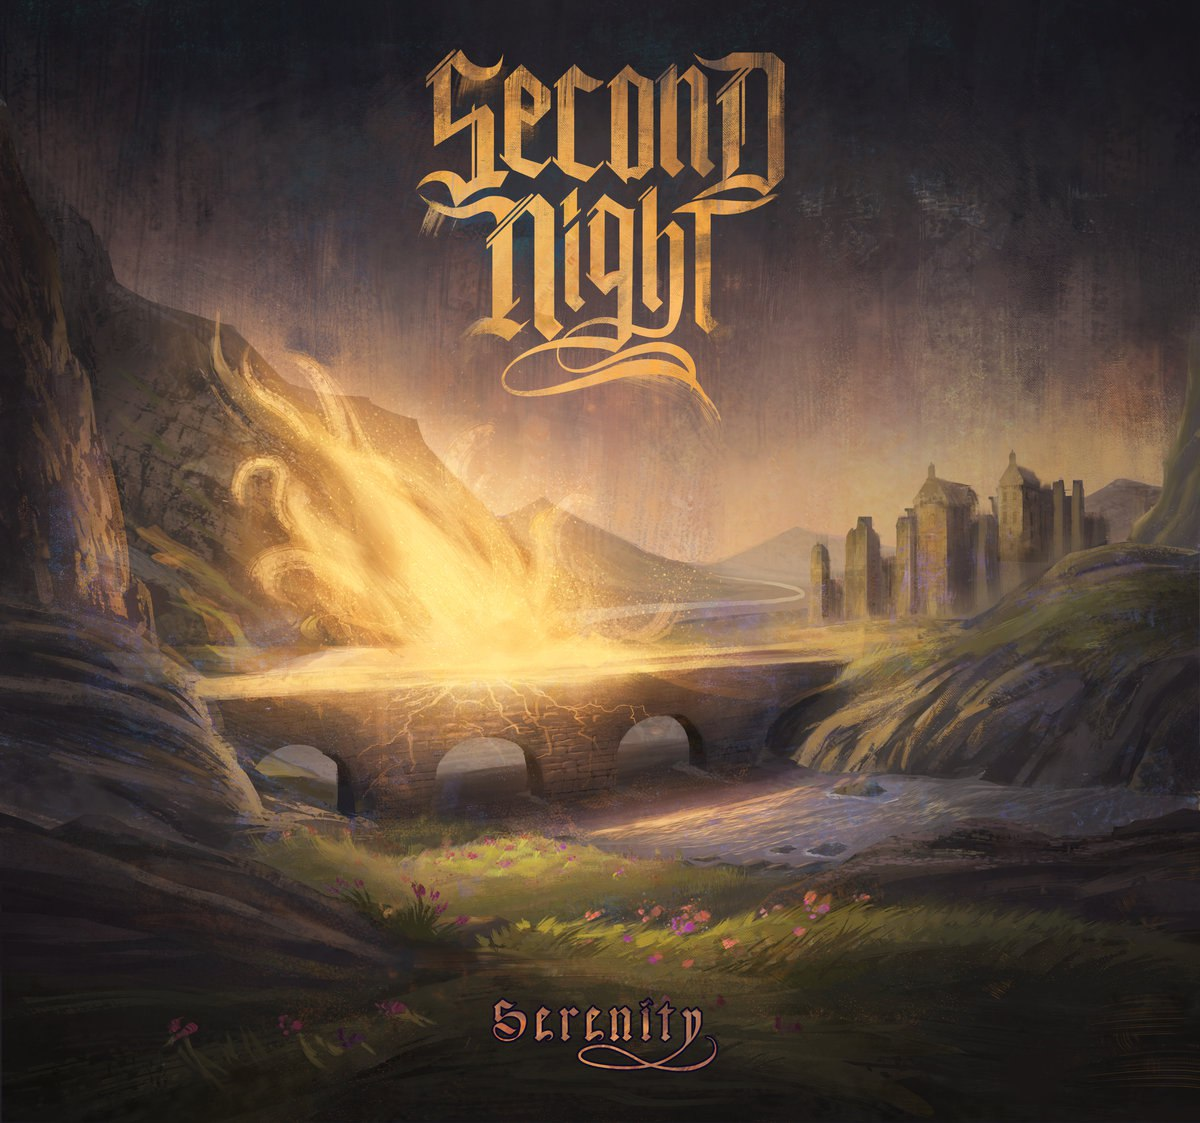 Second Night - Serenity [EP] (2016)